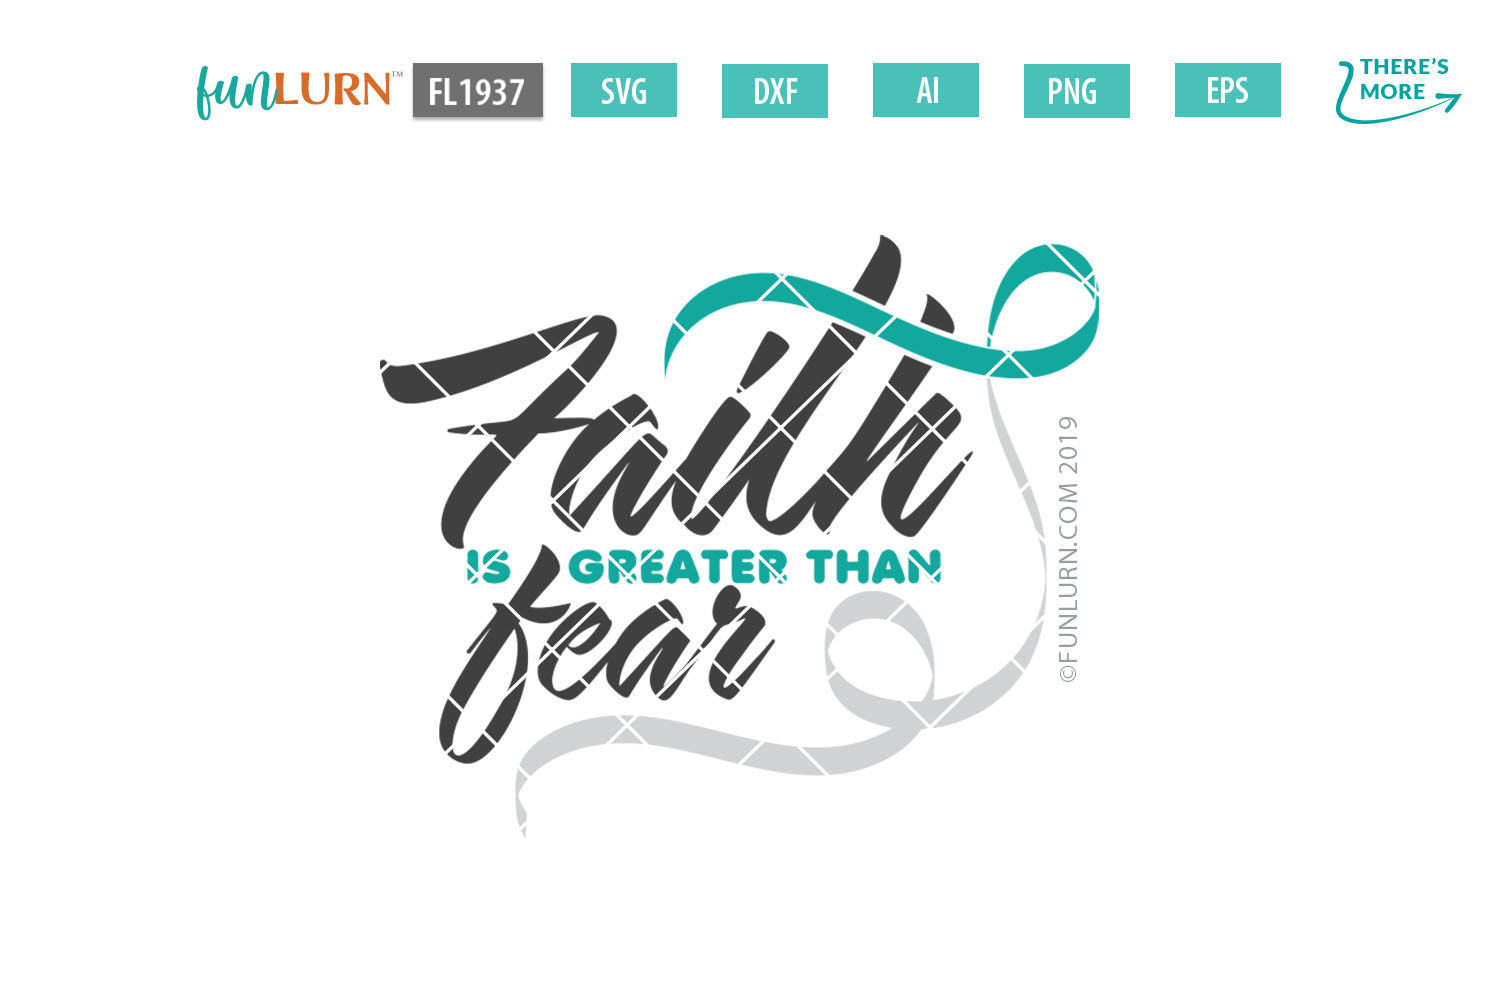 Faith is Greater Than Fear Teal and White Ribbon SVG example image 2